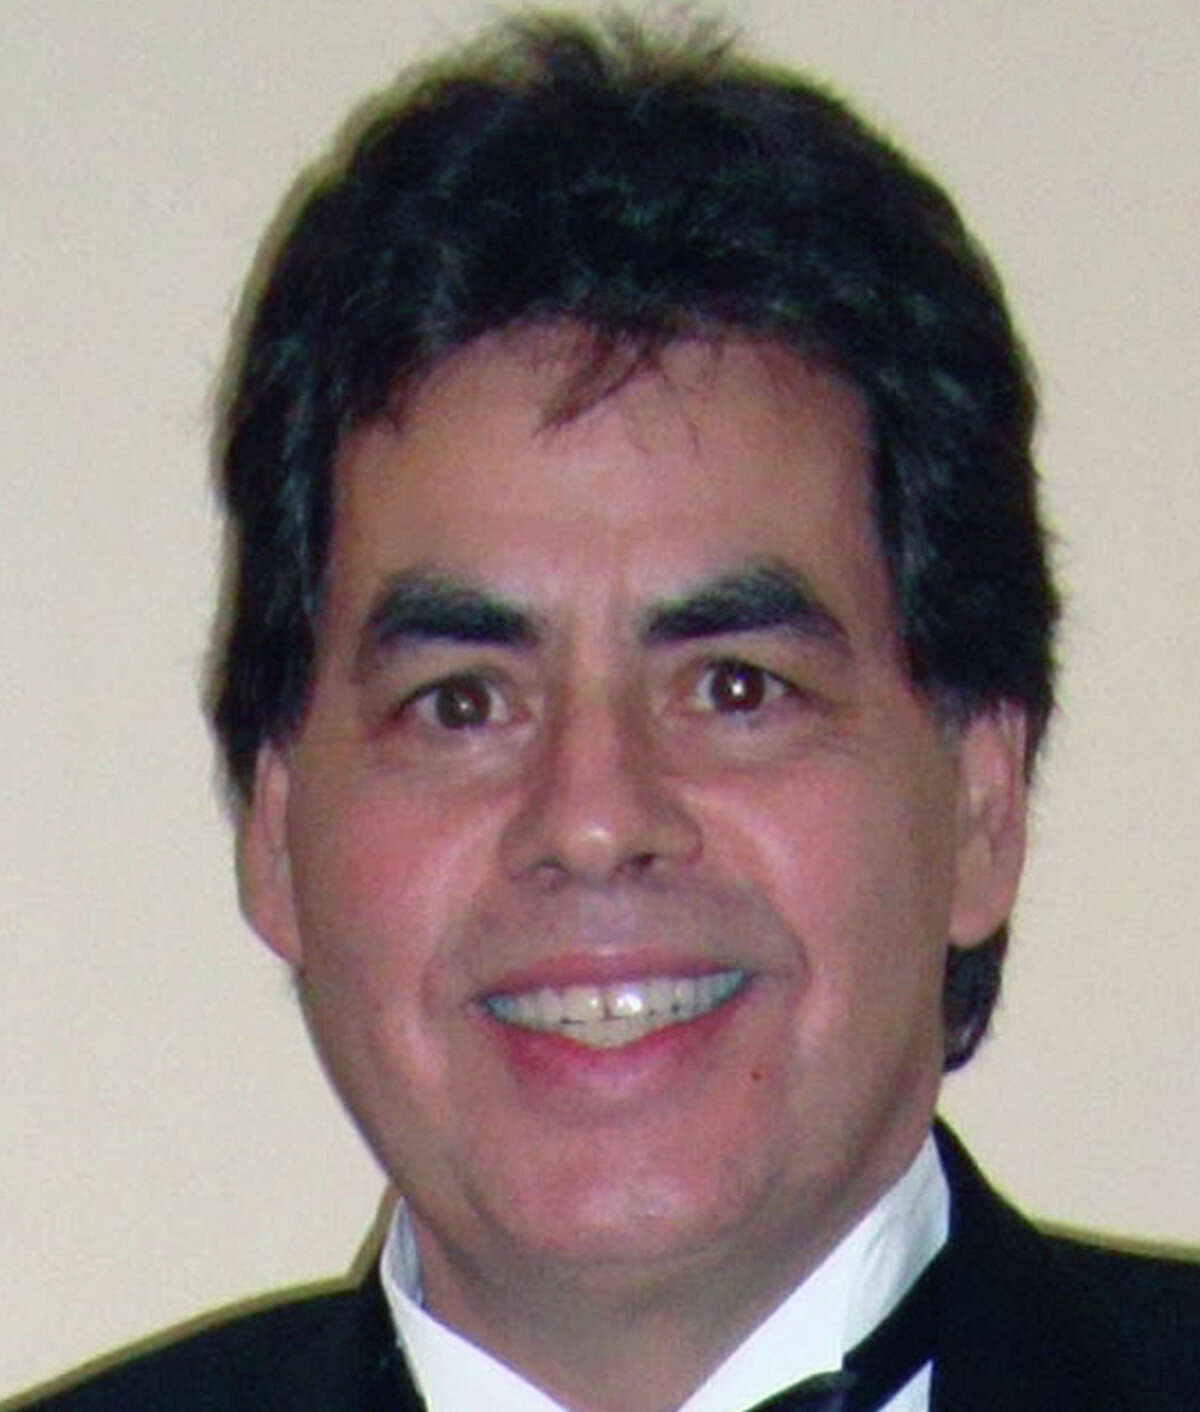 Jose Villarreal of San Antonio will receive Mexico's Order of the Aztec Eagle award Nov. 17. The annual award is the highest from the Mexican government to foreigners who work to benefit Mexico.